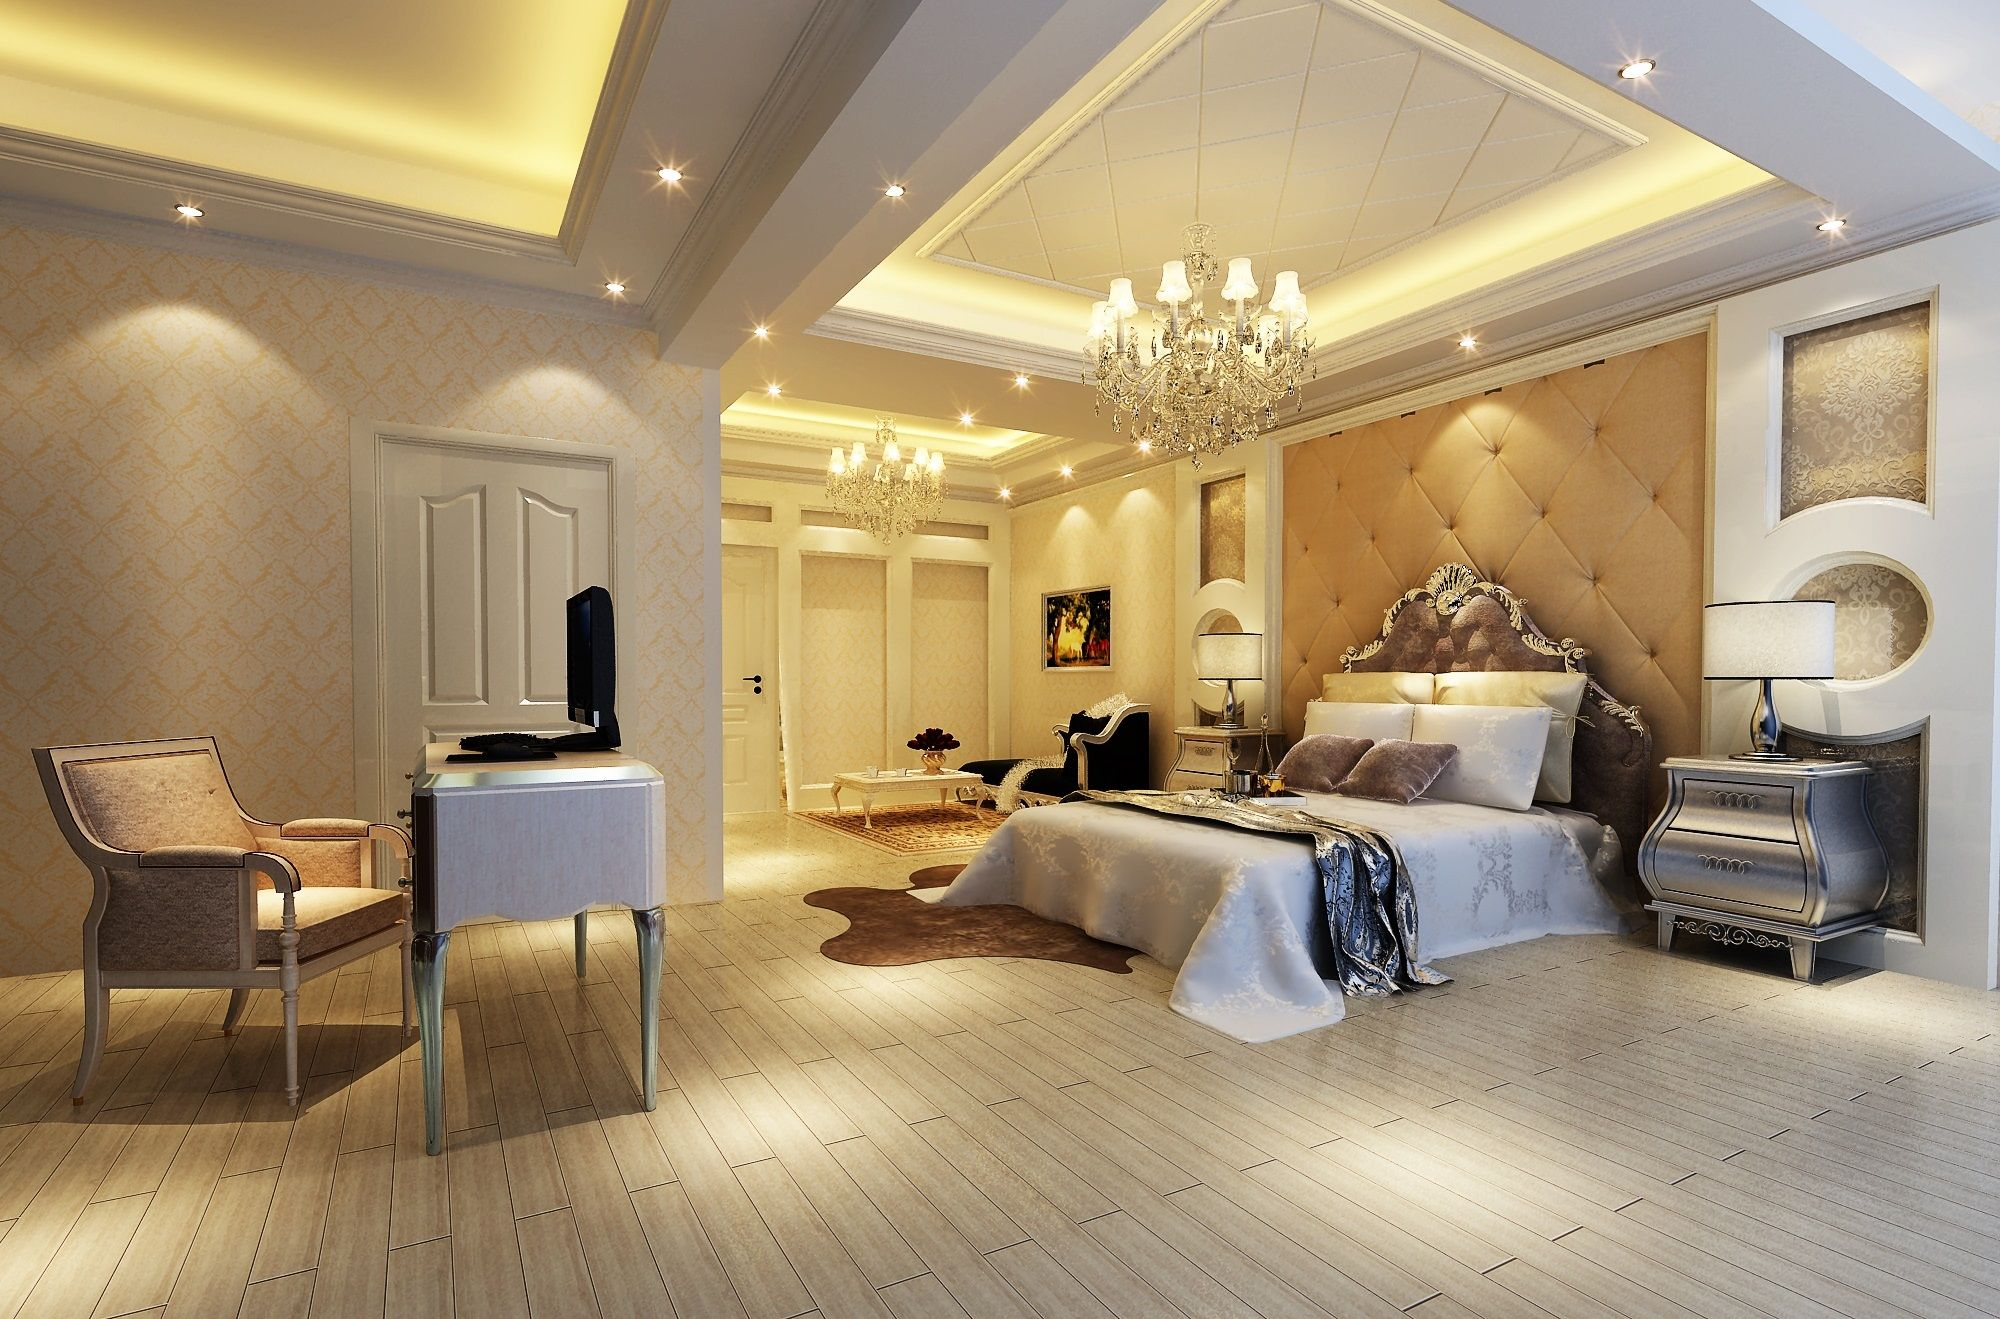 Large master bedroom #Homeowner | Dream home ideas | Pinterest ...